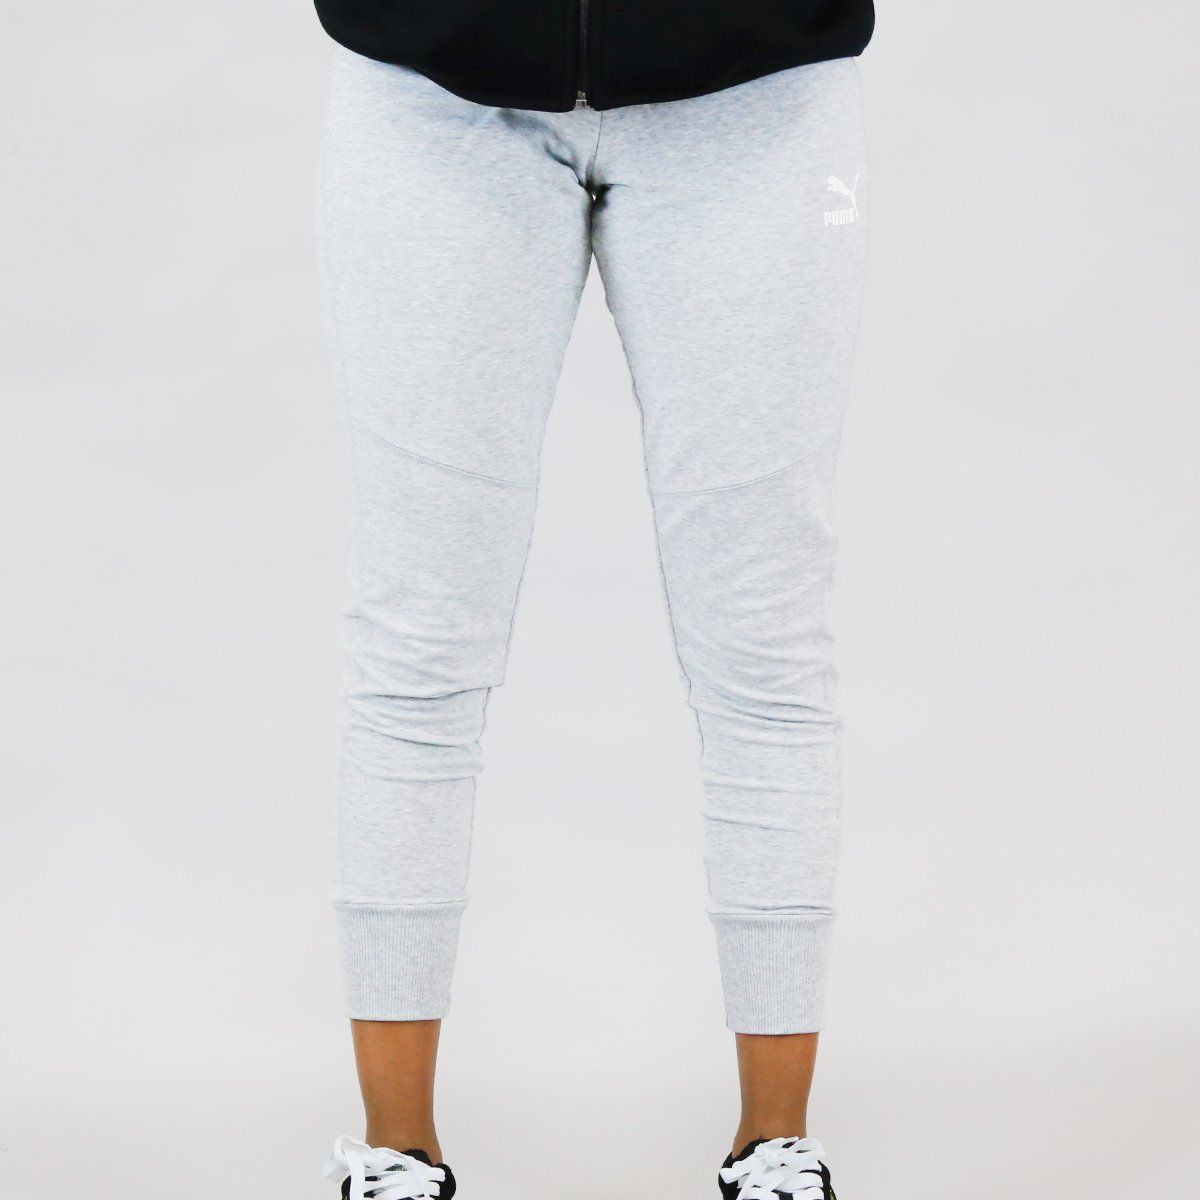 Get your fitness level up with pumas slim pant perfect